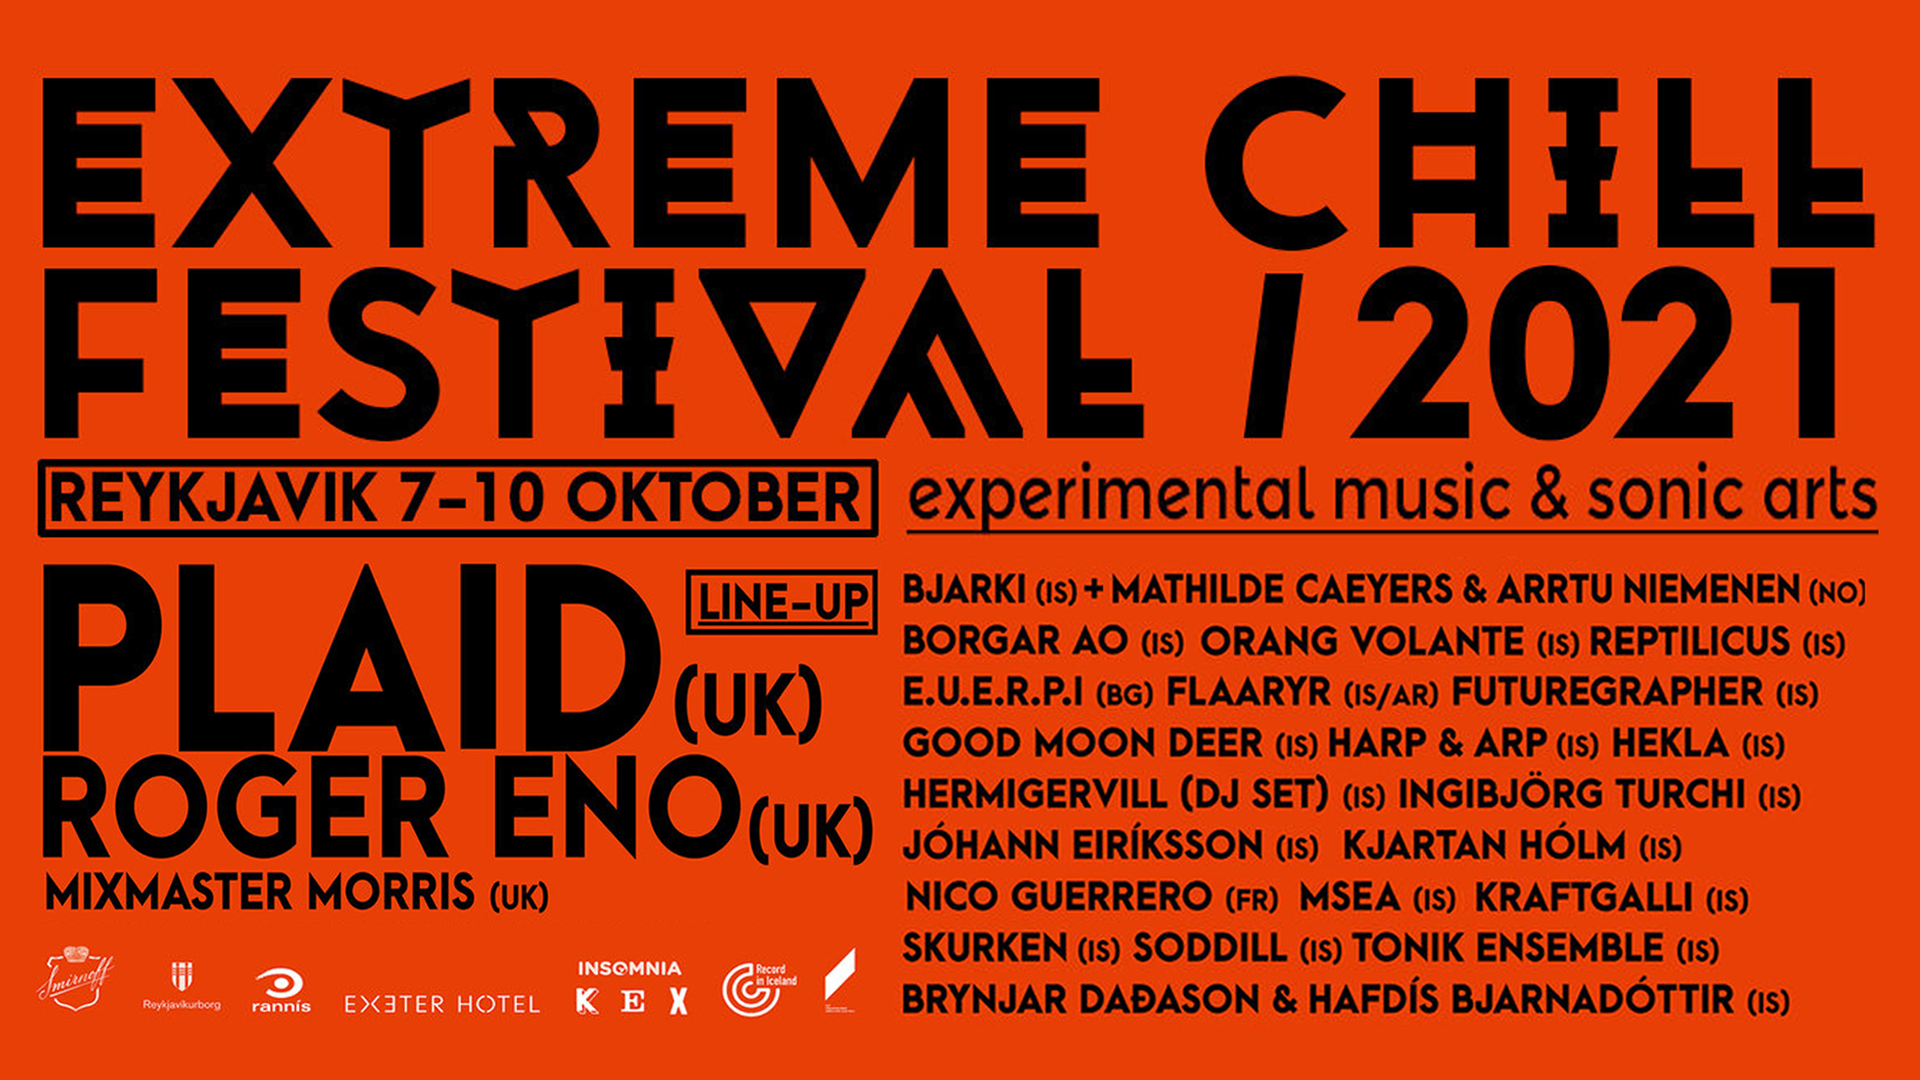 Nico Guerrero concert at Extreme Chill Festival | Reykjavik | Oct. 9 2021